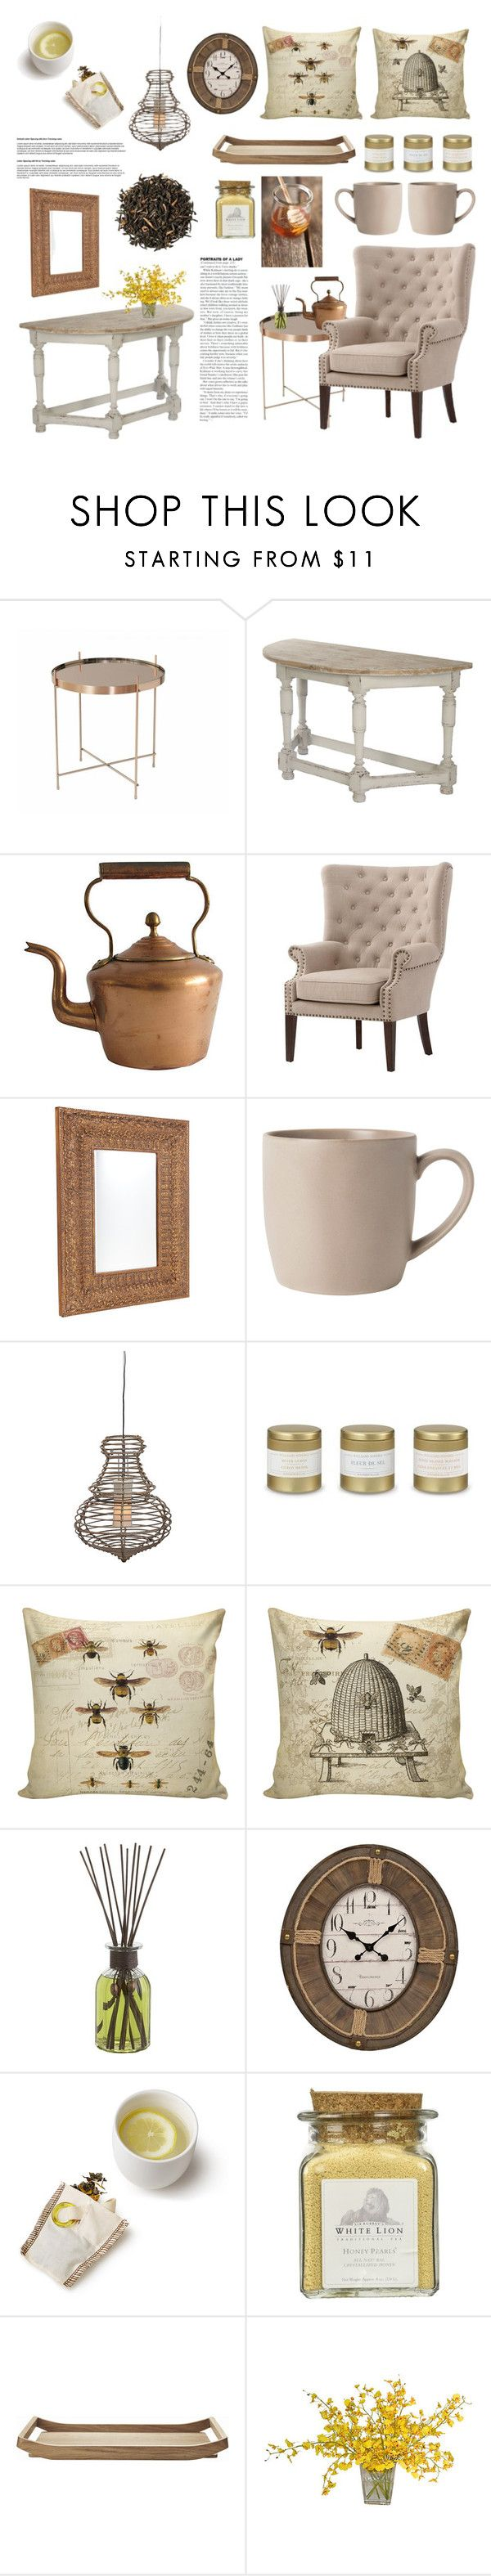 """Honey Lemon"" by thenobili-tea ❤ liked on Polyvore featuring interior, interiors, interior design, home, home decor, interior decorating, Home Decorators Collection, Cafe Lighting, Dot & Bo and Jeffan"